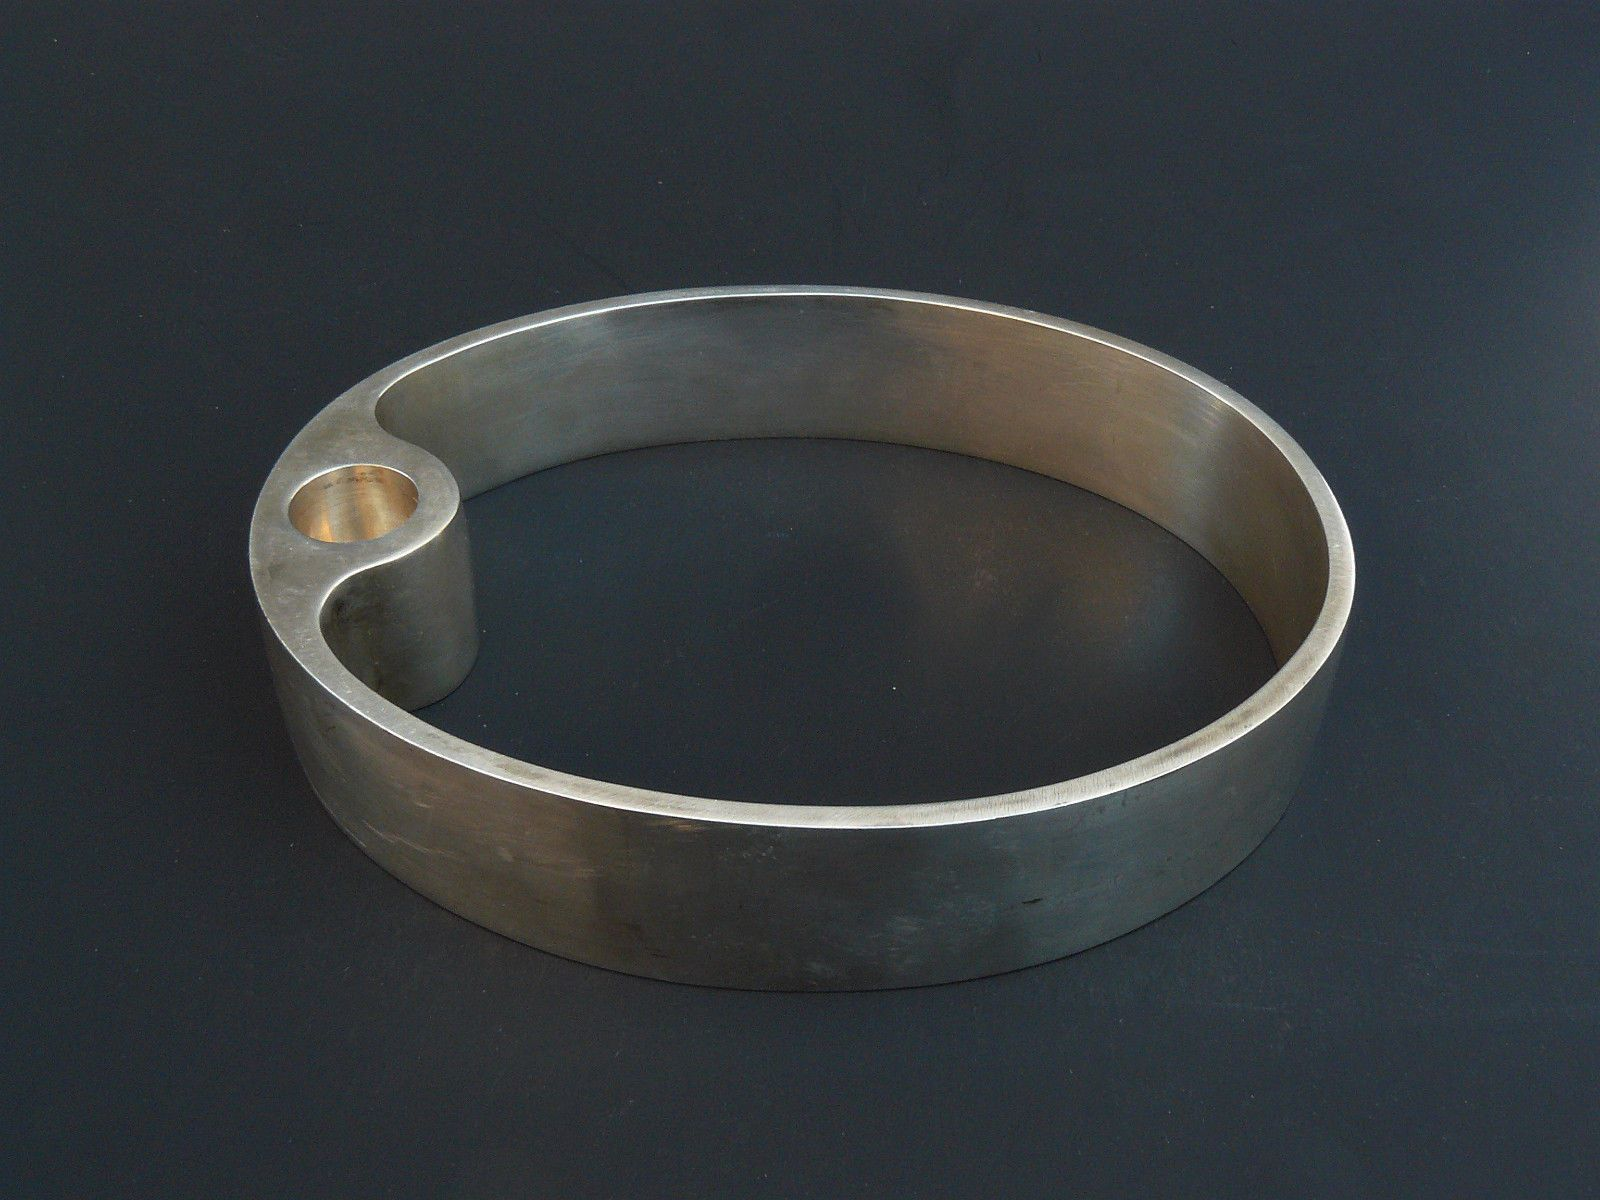 """Contemporary Metal Oval Ring Candle Holder Candlestick 7.5"""" and Heavy  A unique and simple design metal oval ring candle holder!  The material is non magnetic metal and heavy for its size.  No mark of the maker  The piece is in very good vintag..."""